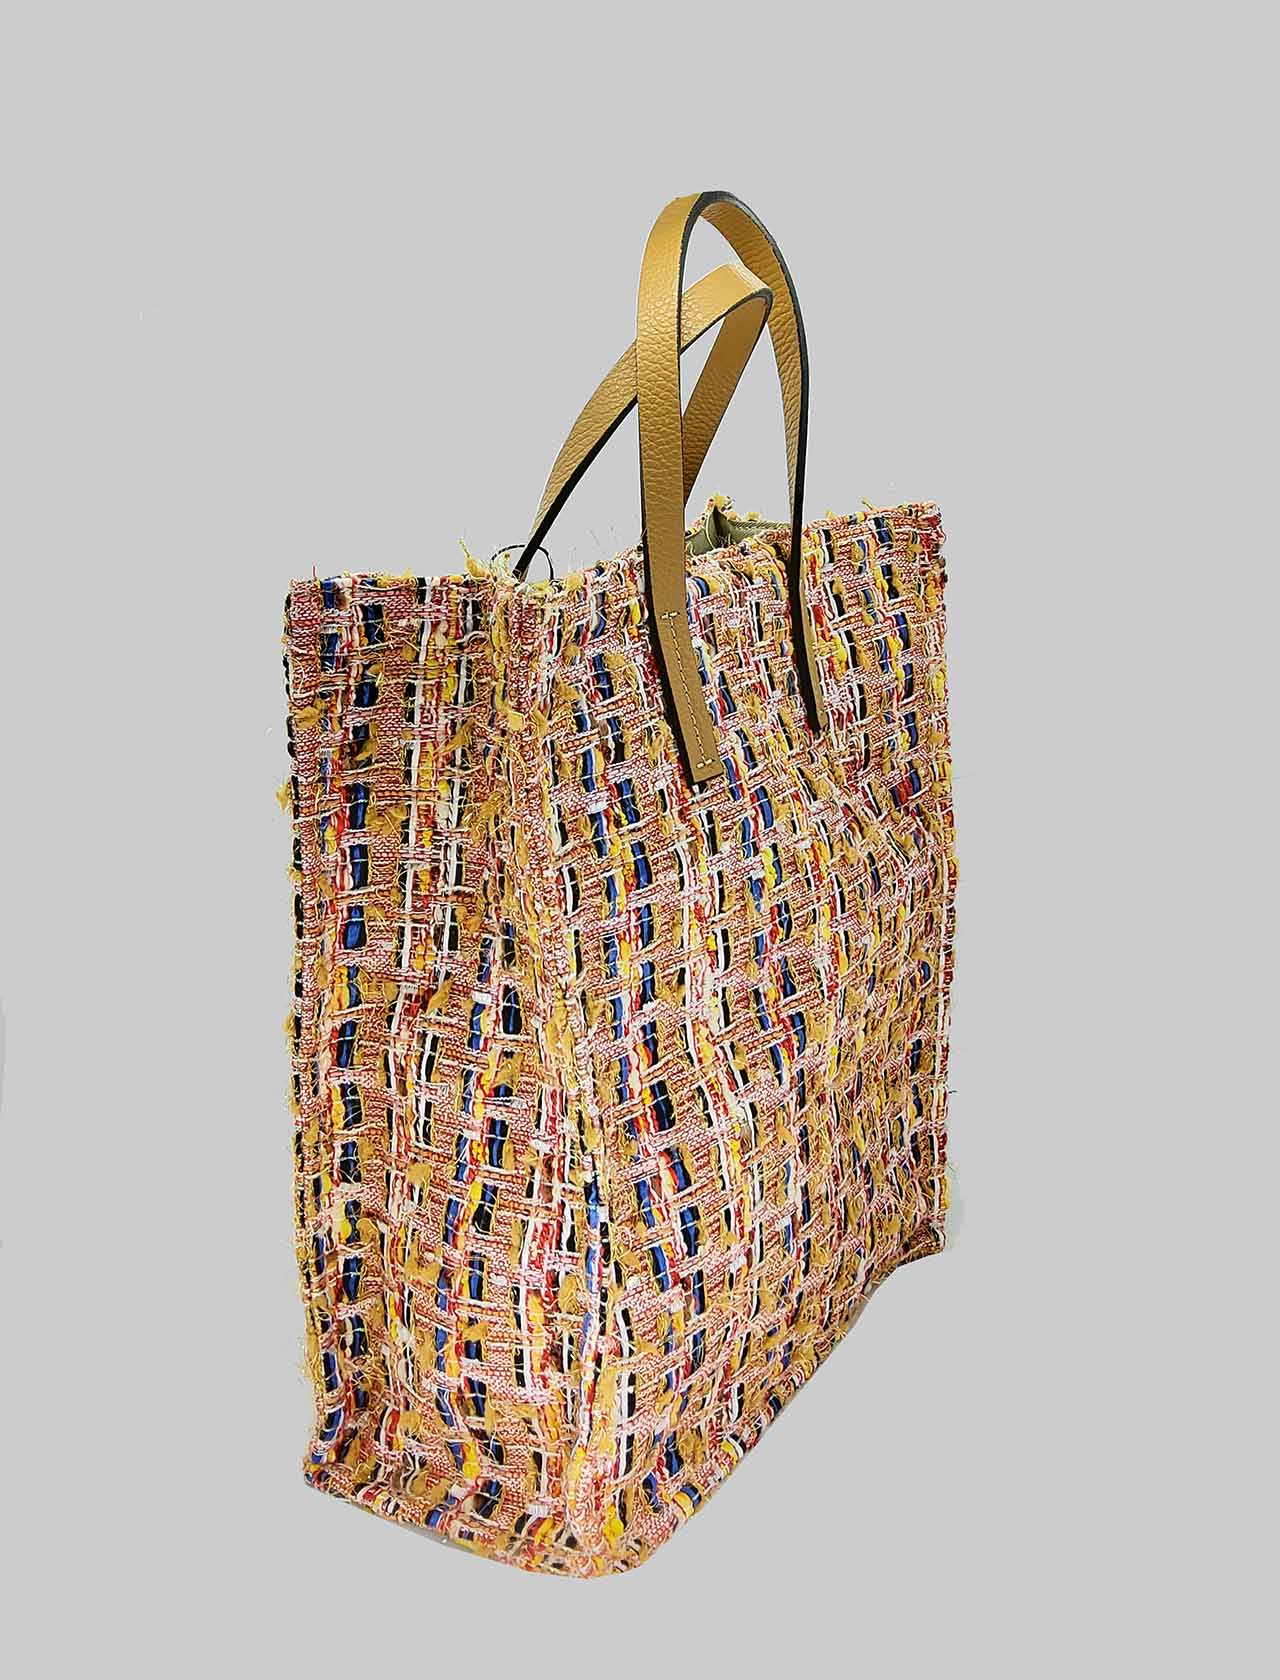 Women's Shopping Bags in Multicolored Peach Fabric with Double Handle Kassiopea | Bags and backpacks | UMIL020